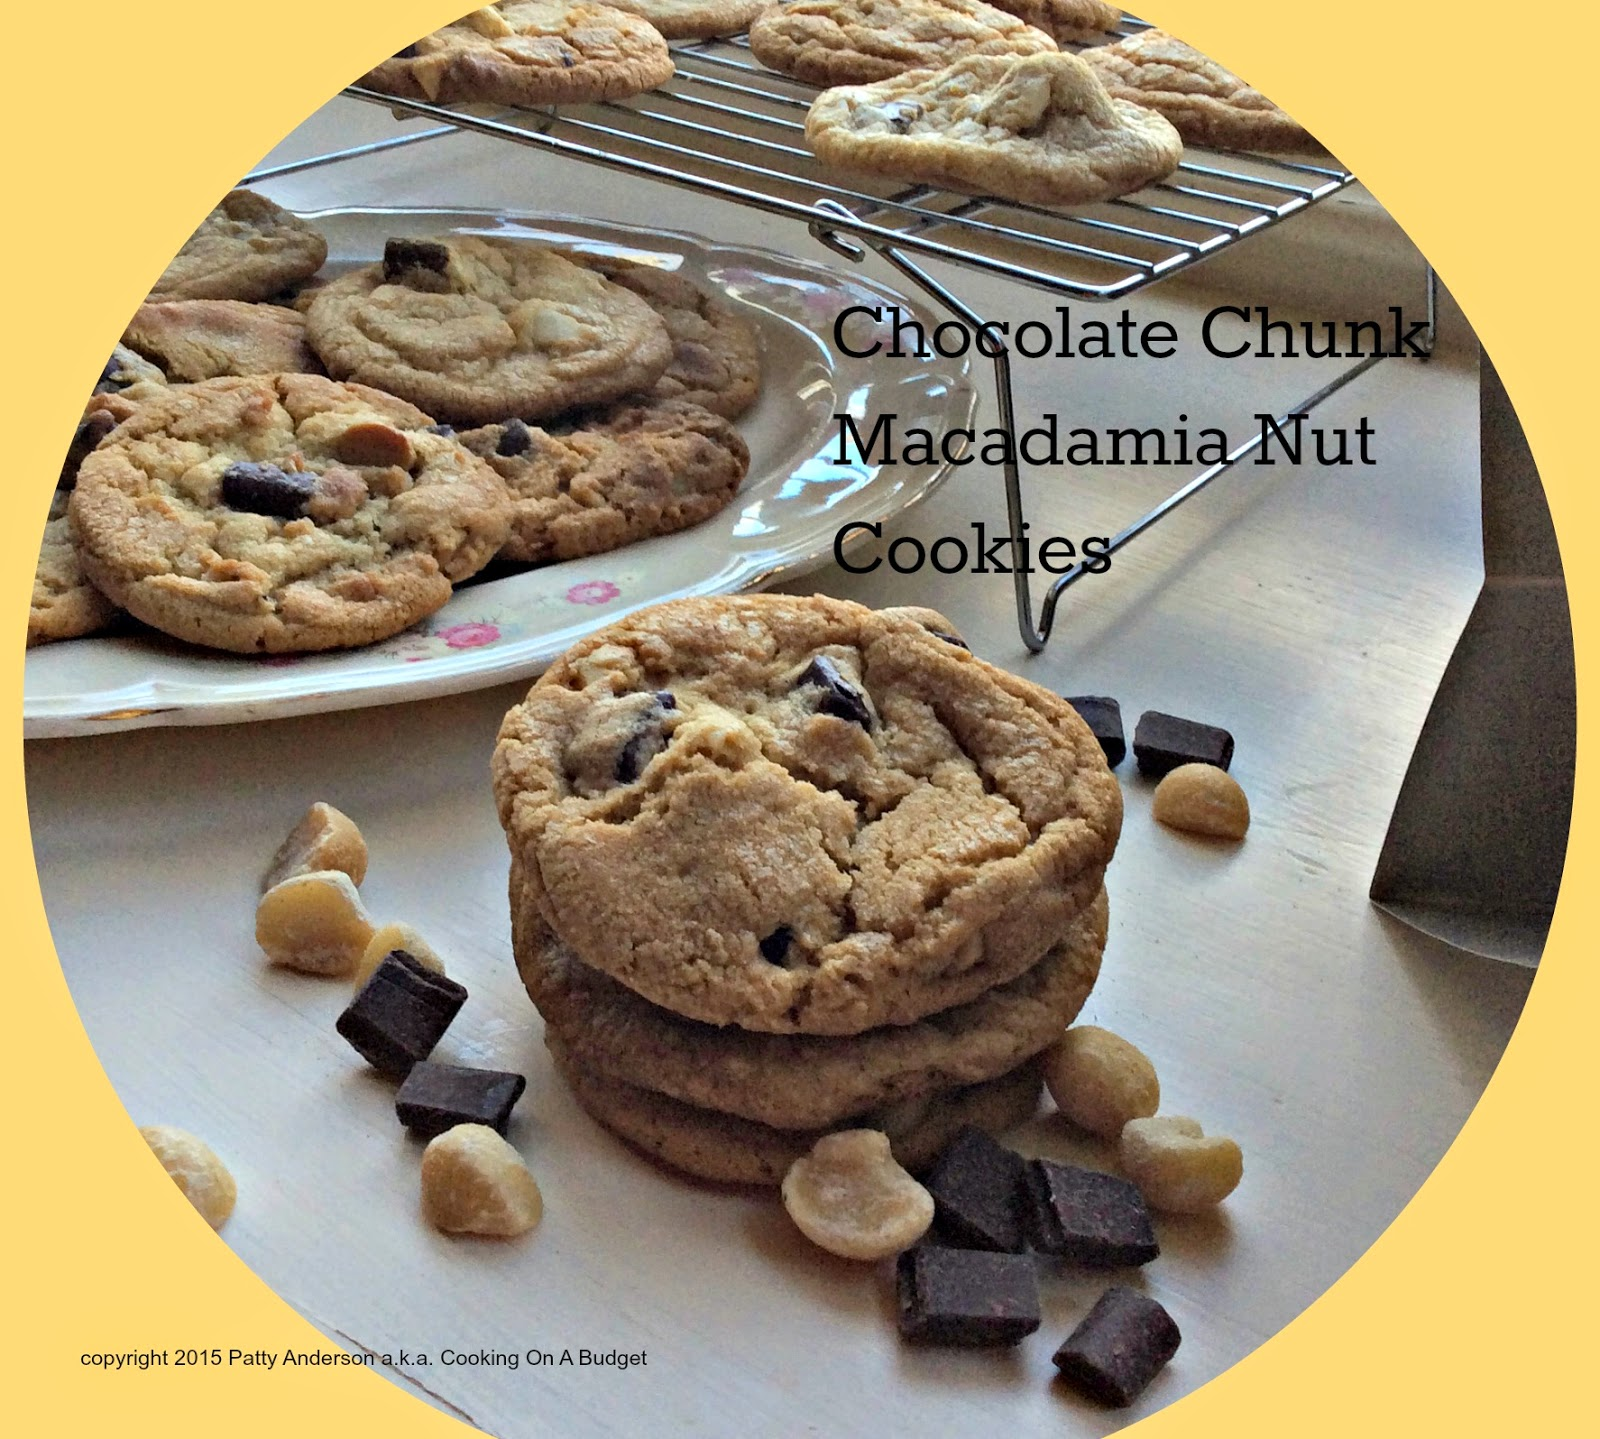 Chocolate Coconut Patties Dunmore Candy Kitchen: Cooking On A Budget: Chocolate Chunk Macadamia Nut Cookies